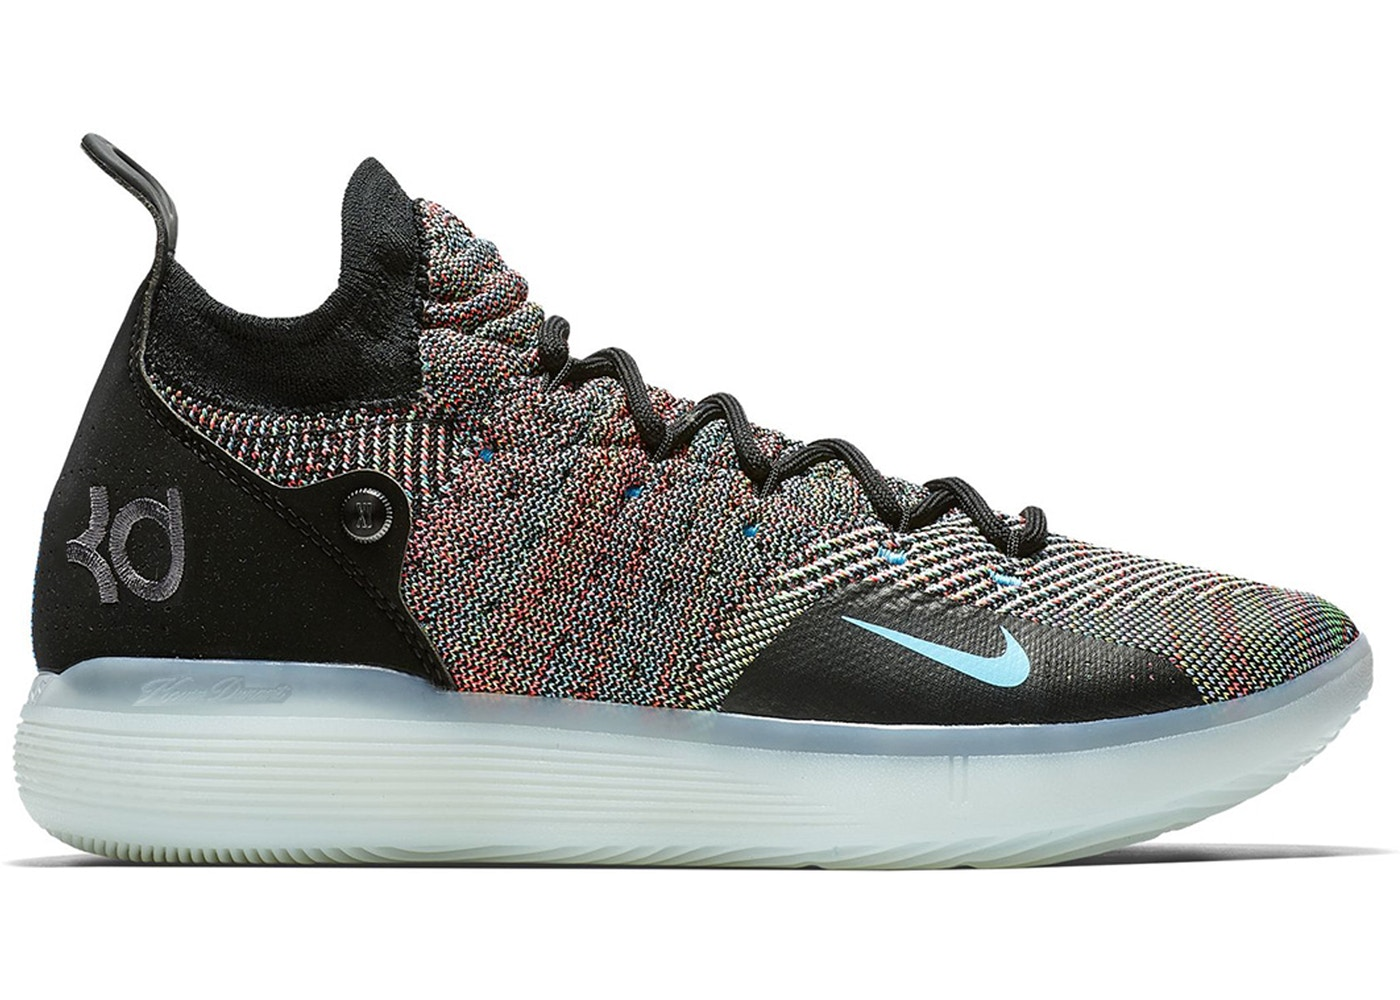 premium selection 47c82 a0bc2 Buy Nike KD Shoes   Deadstock Sneakers